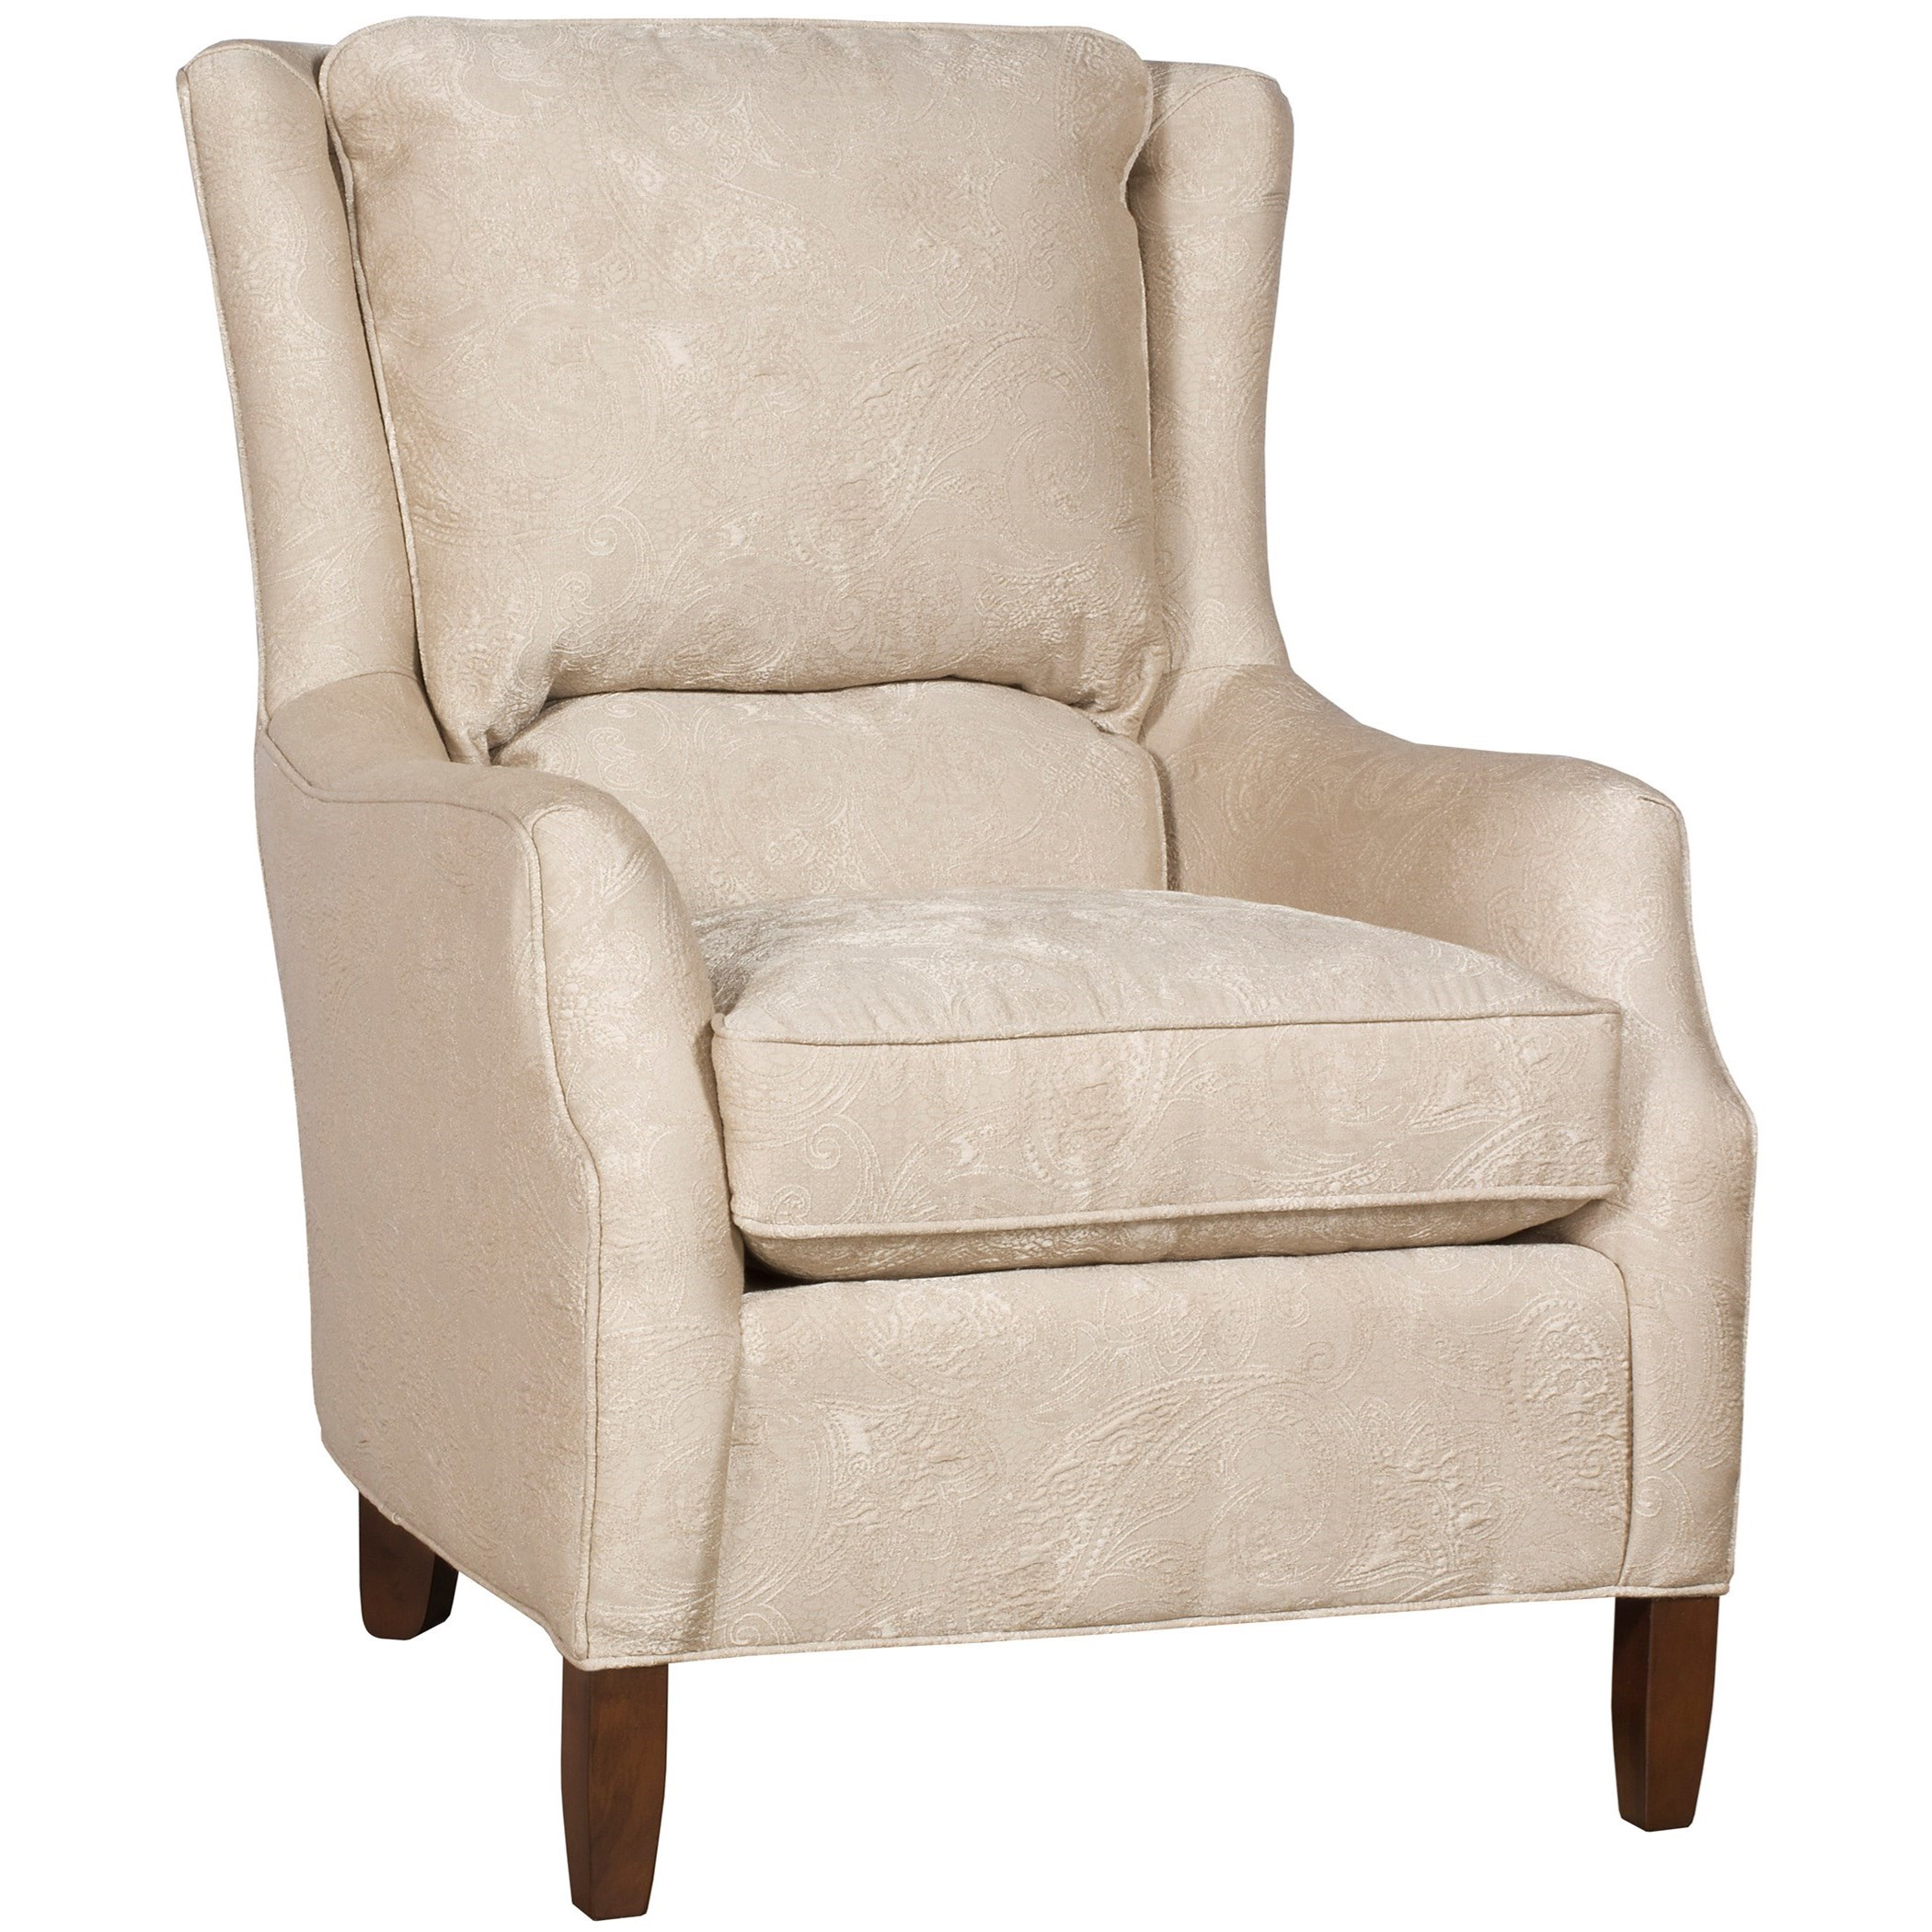 King Hickory Writer Traditional Upholstered Writer Chair